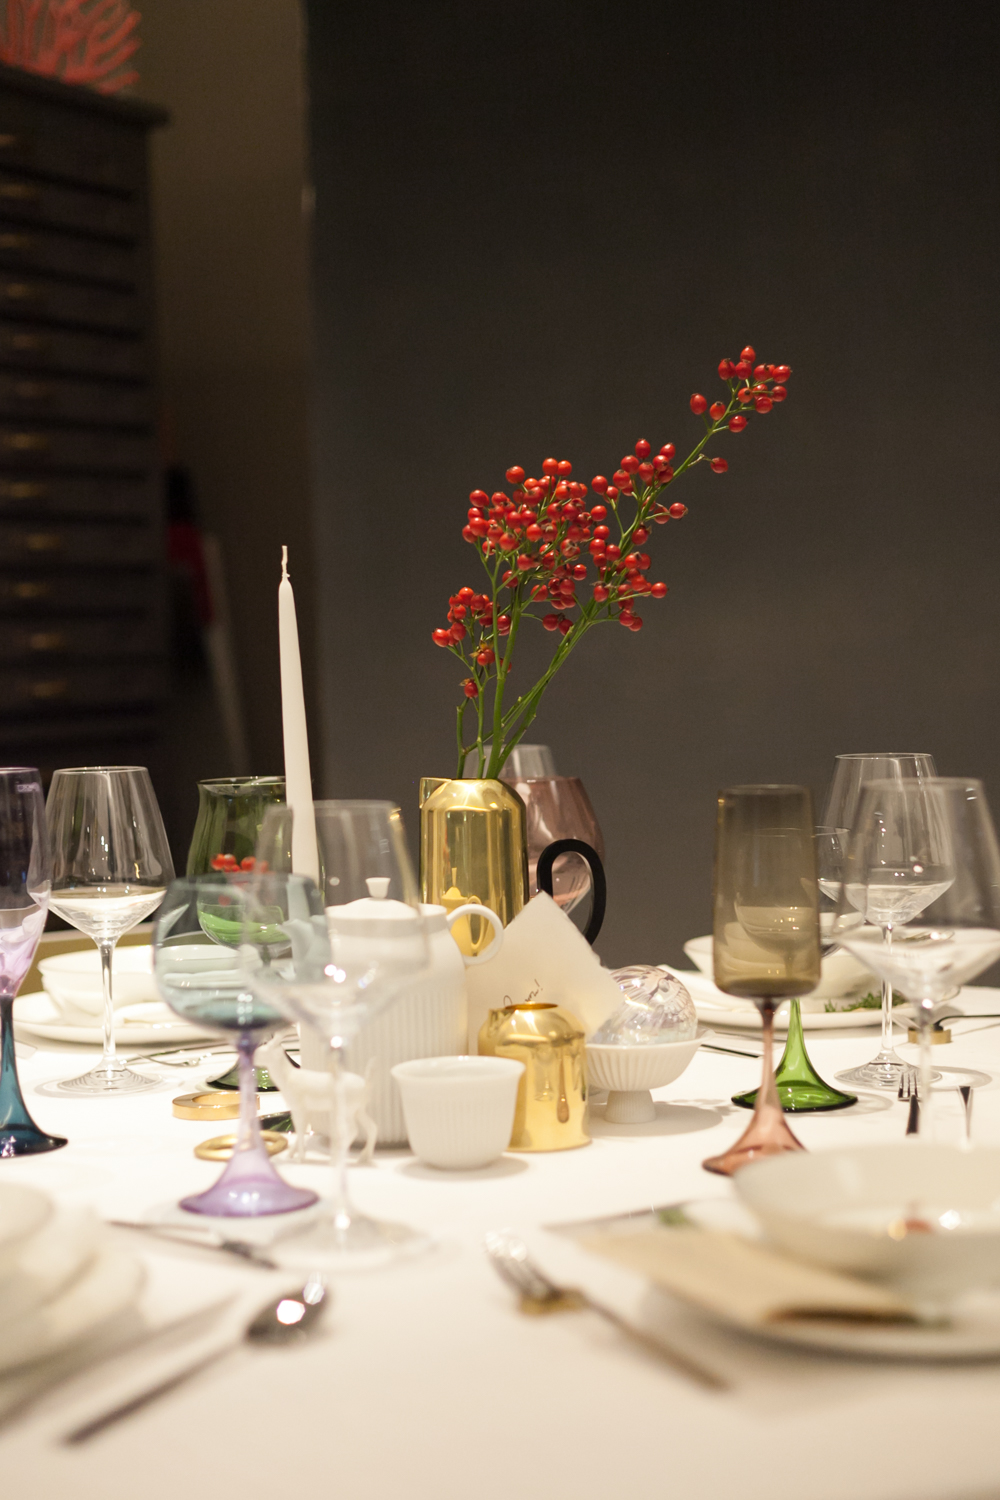 SET THE TABLE STYLING EVENTO SPAZIO MATERIAE NAPOLI FORME DI FARINA TAVOLA NATALE PHOTO (8 di 16).jpg